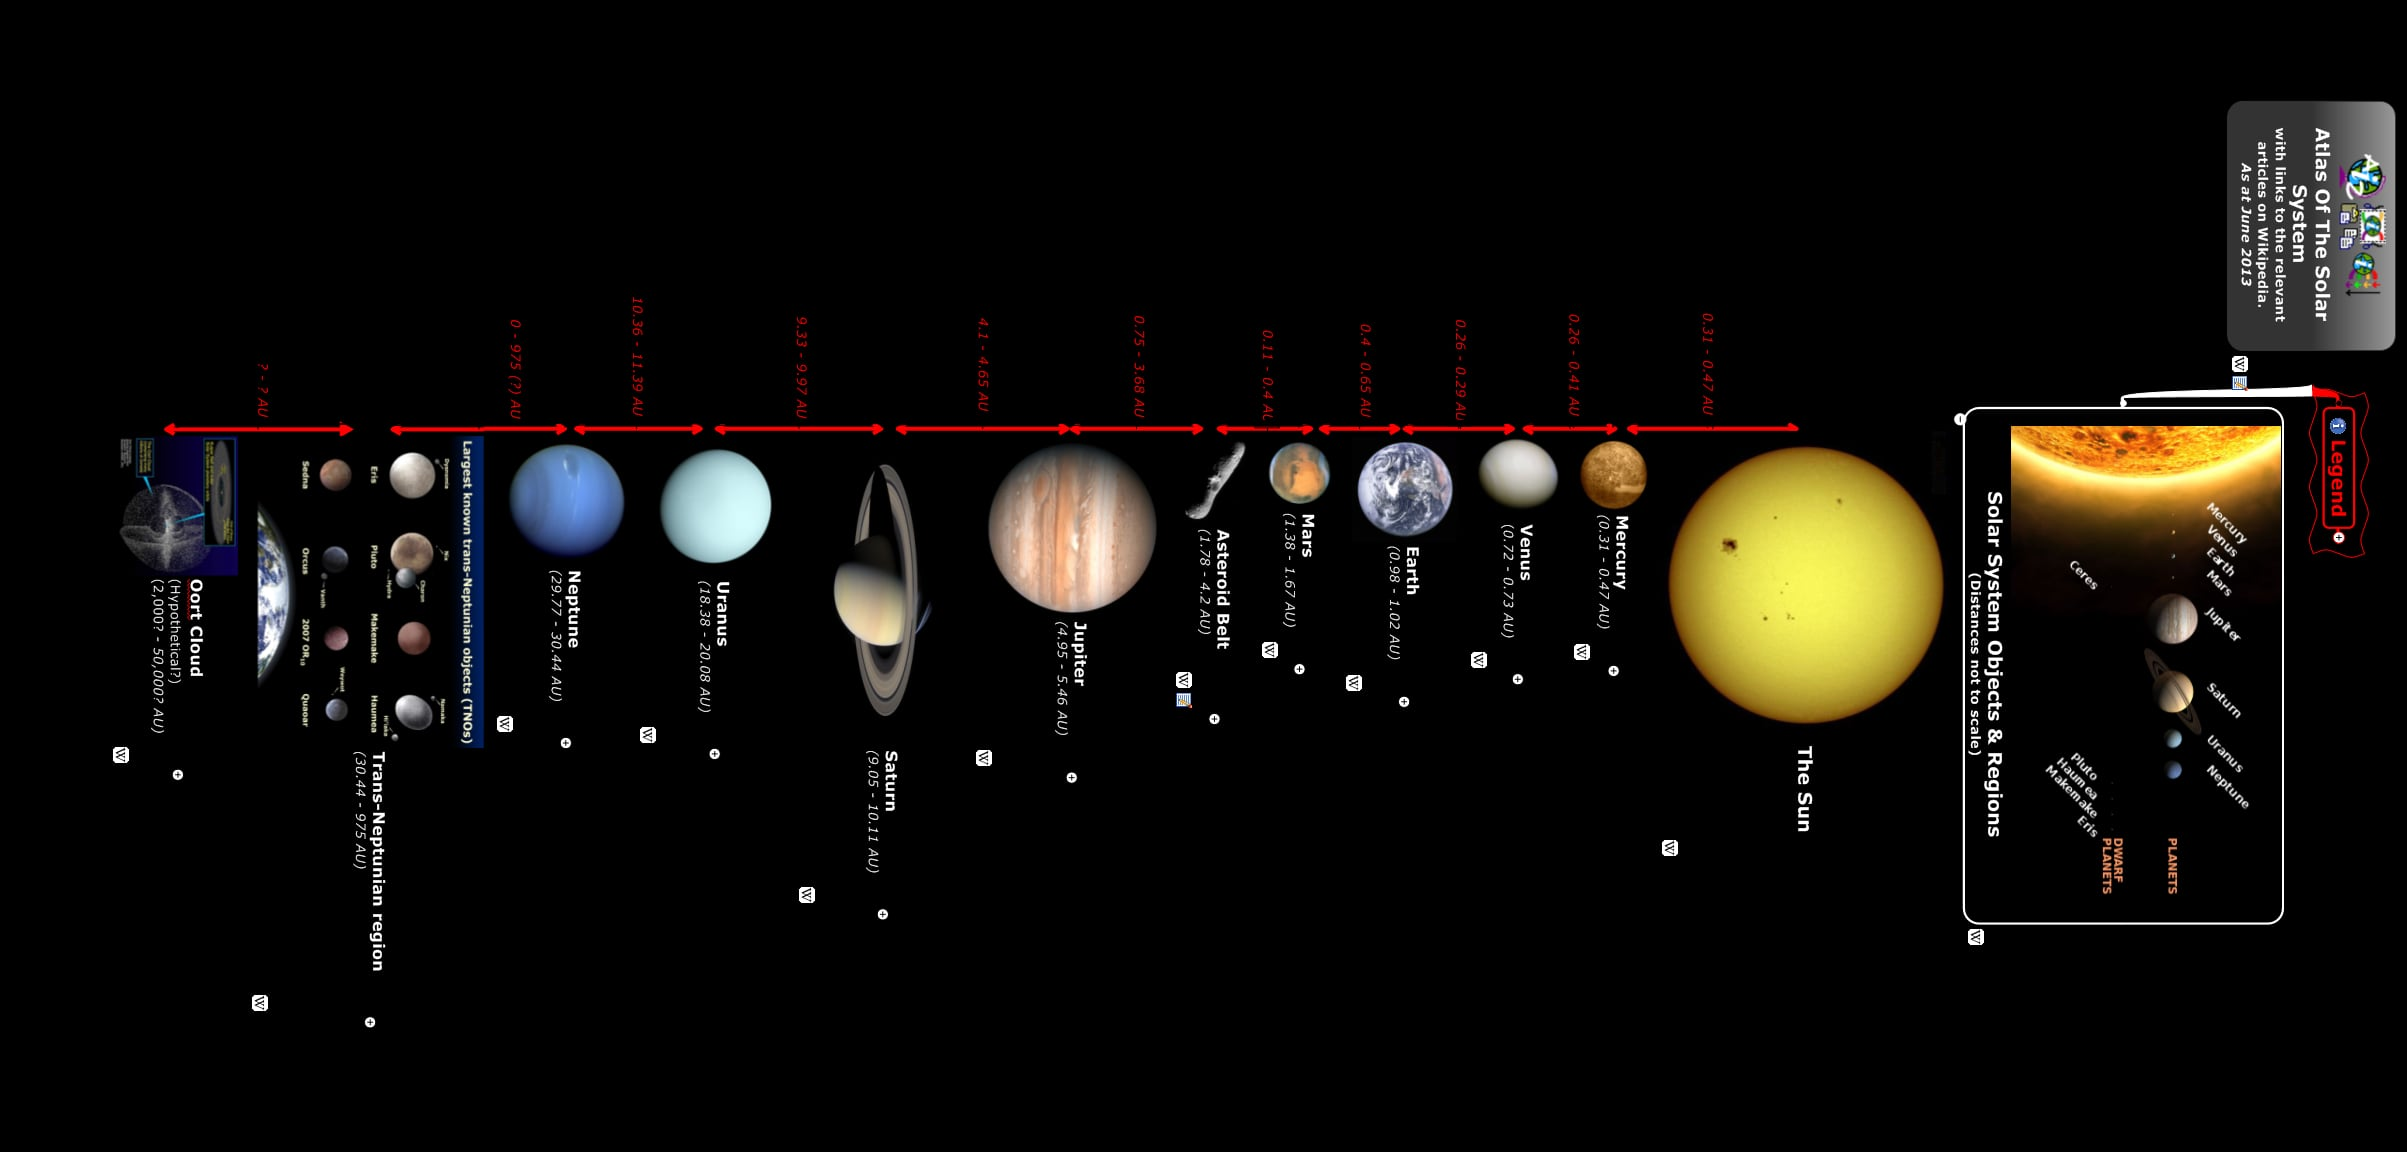 the inner and outer planets in our solar system universe - HD2407×1152